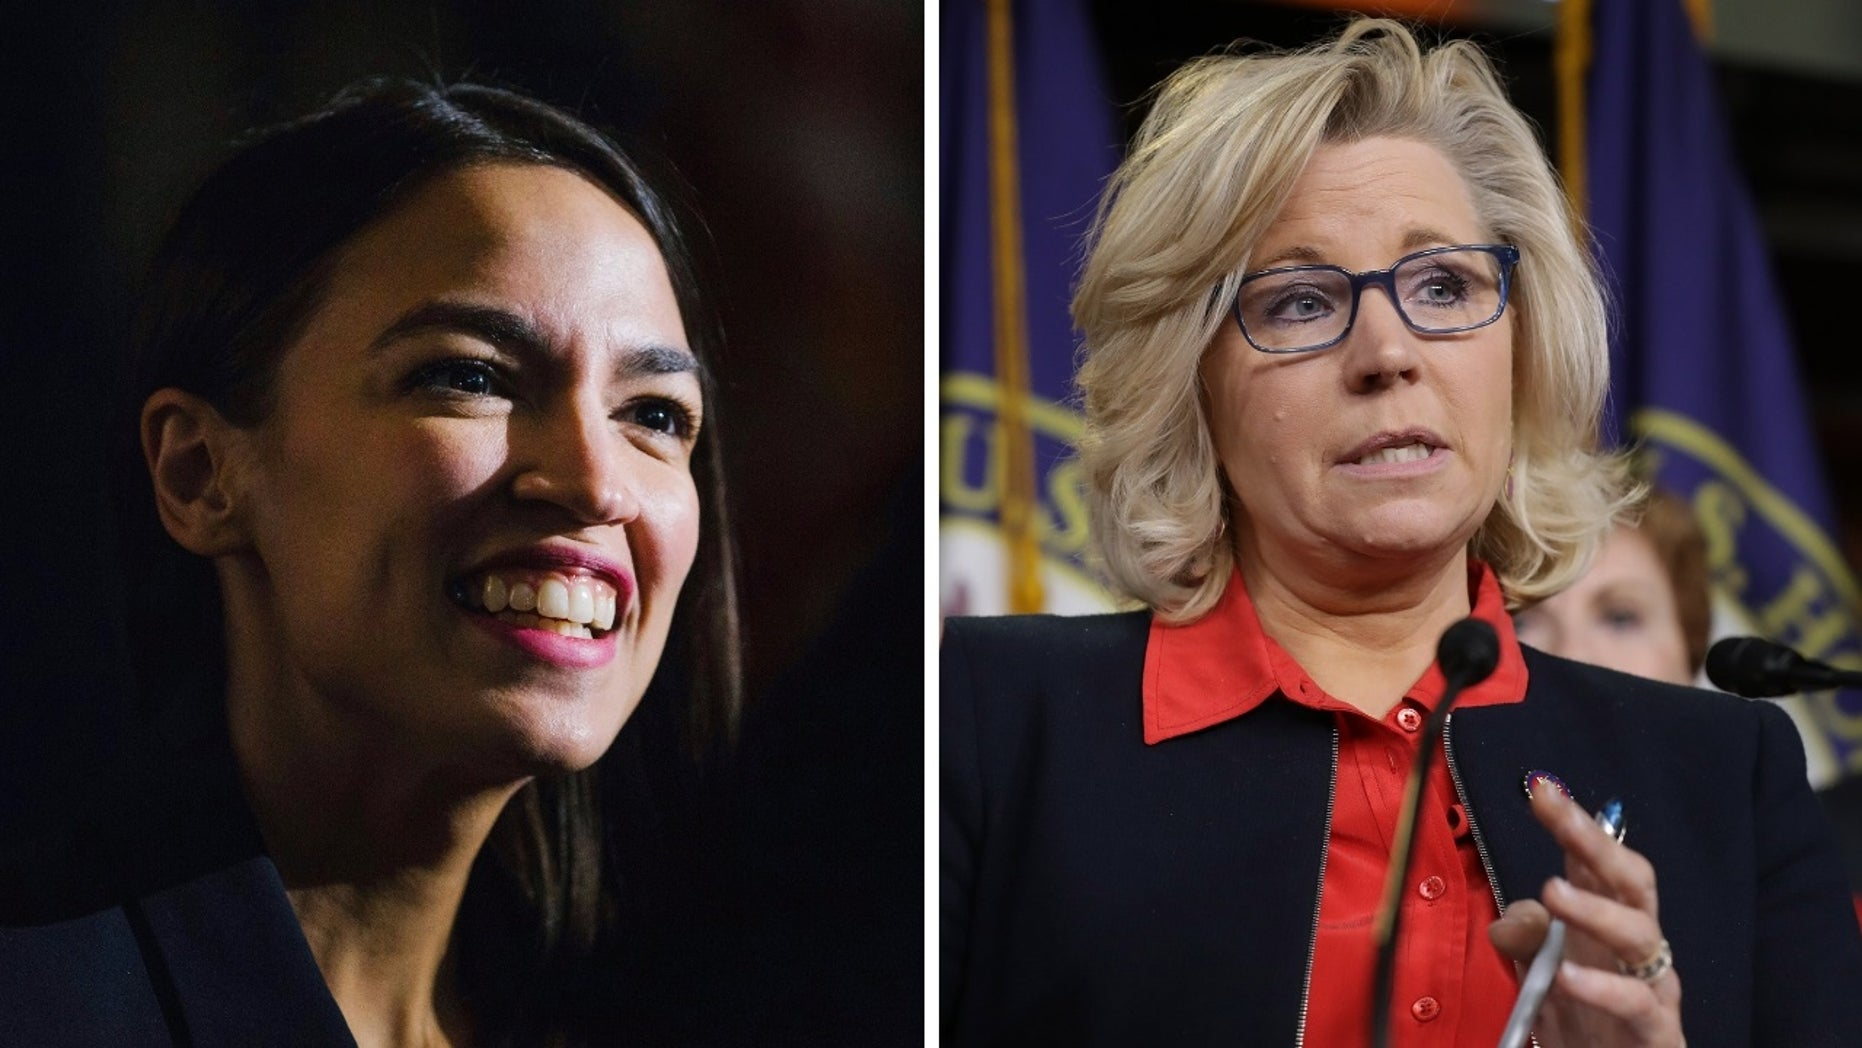 House Representatives Liz Cheney and Alexandria Ocasio-Cortez traded barbs on Twitter over knowledge of the 22nd Amendment and the Constitution.